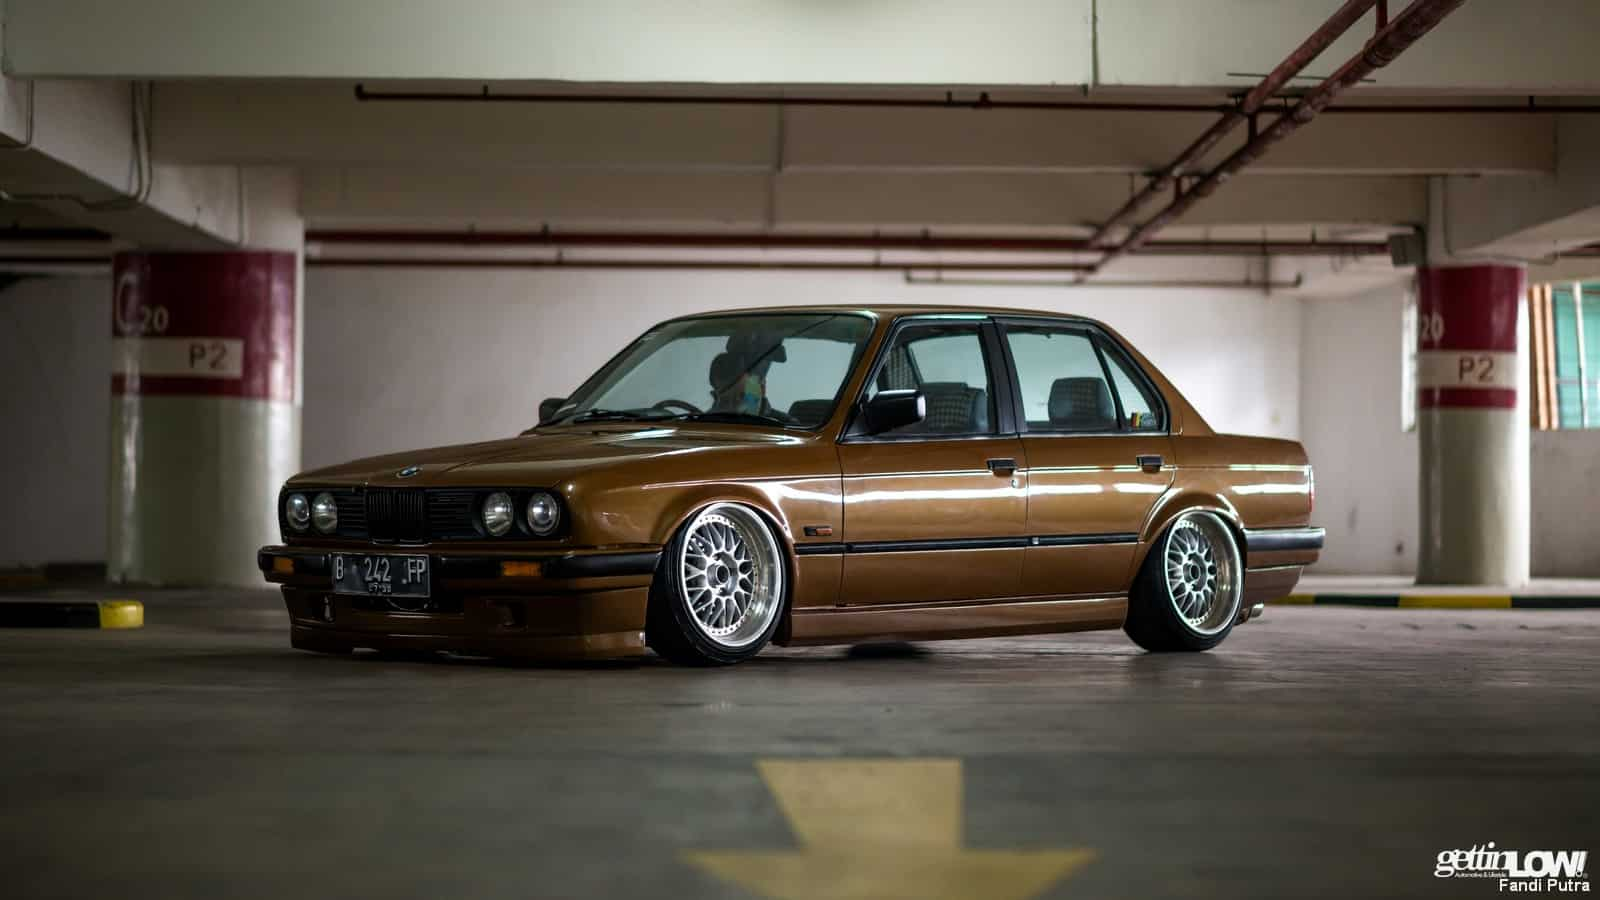 gettinlow tataq andhika bagged 1991 bmw 318i e30 m40. Black Bedroom Furniture Sets. Home Design Ideas